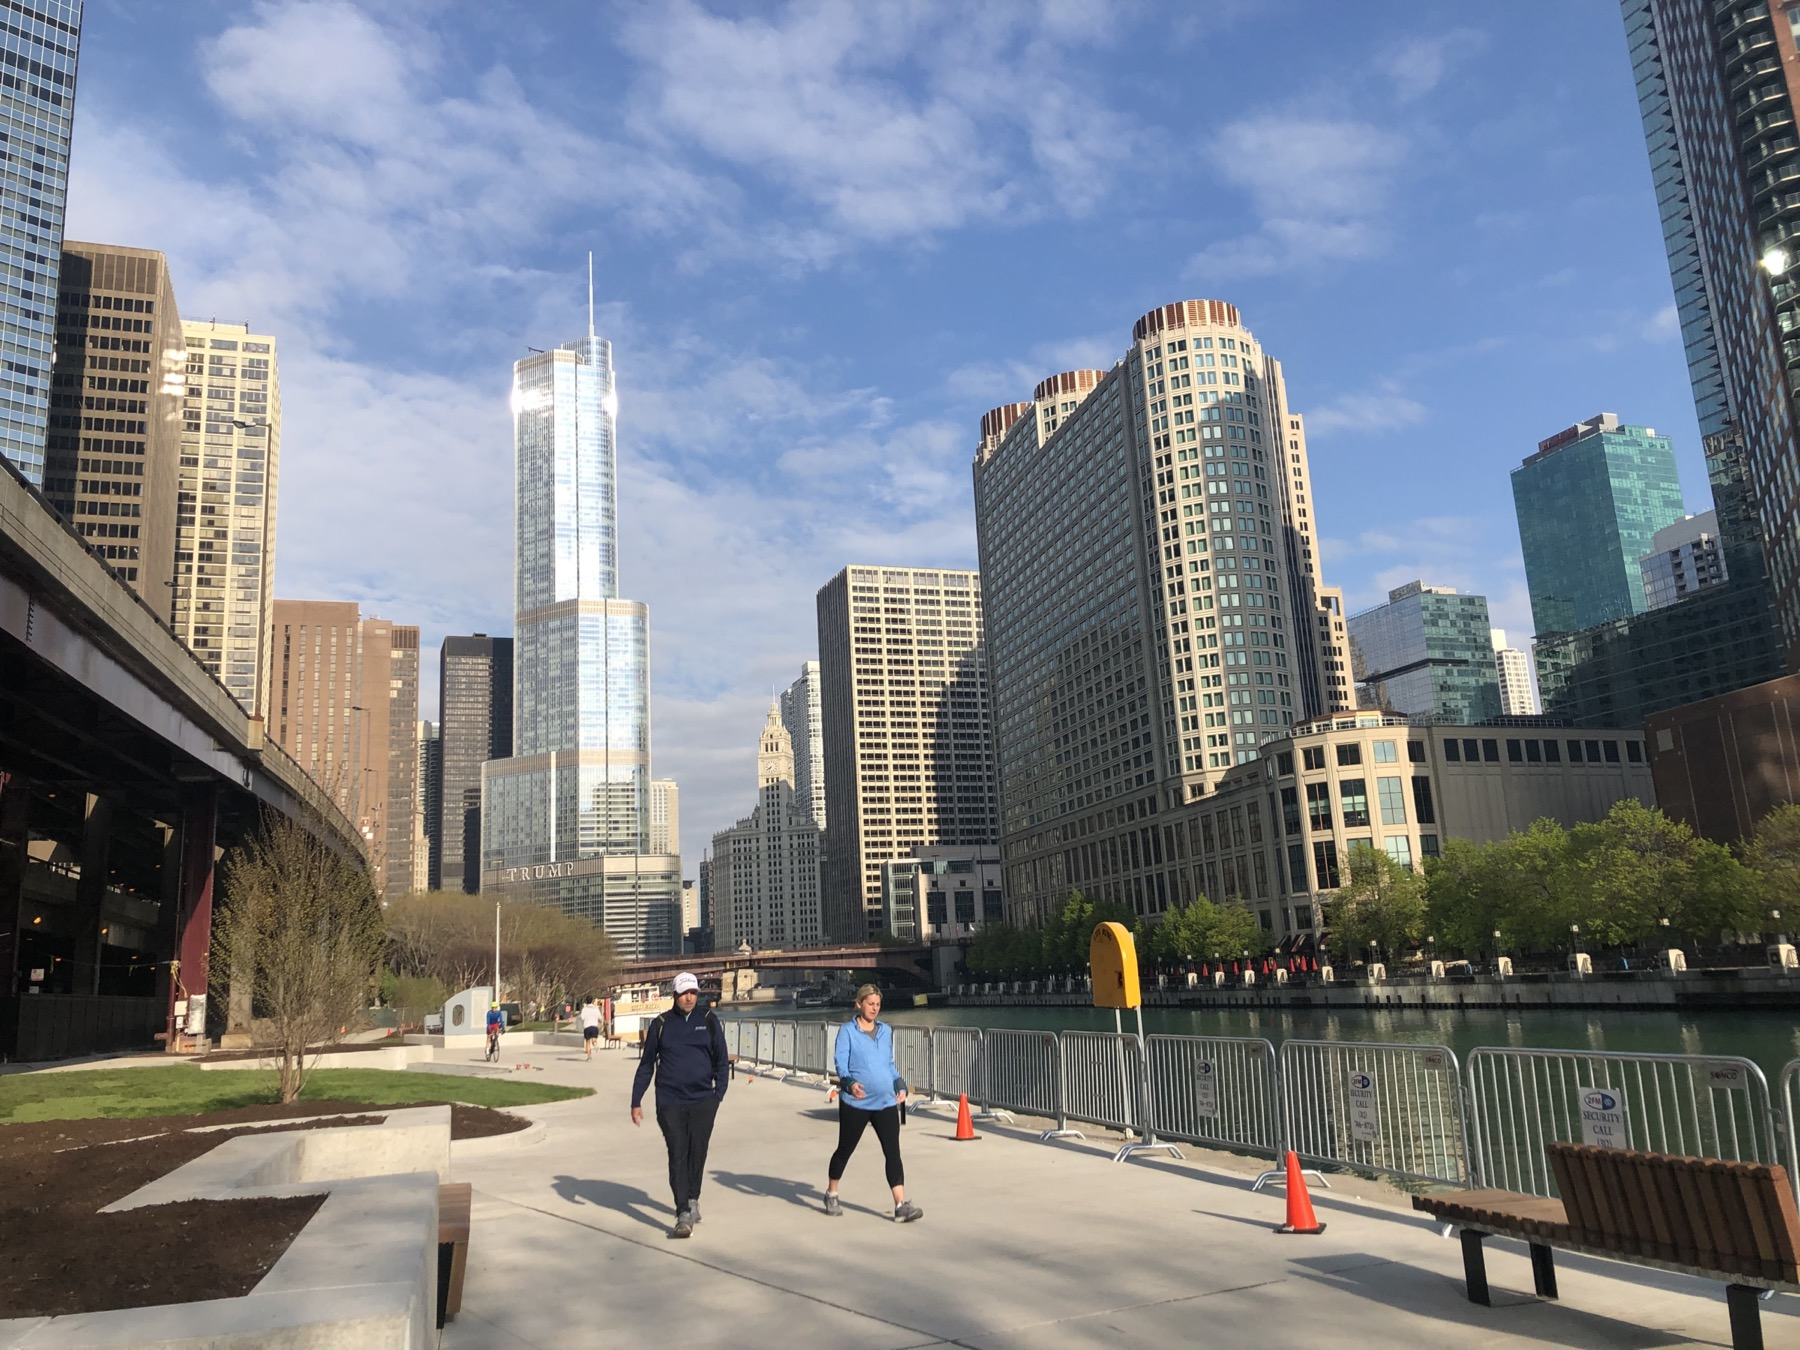 What's new on the Chicago Riverwalk